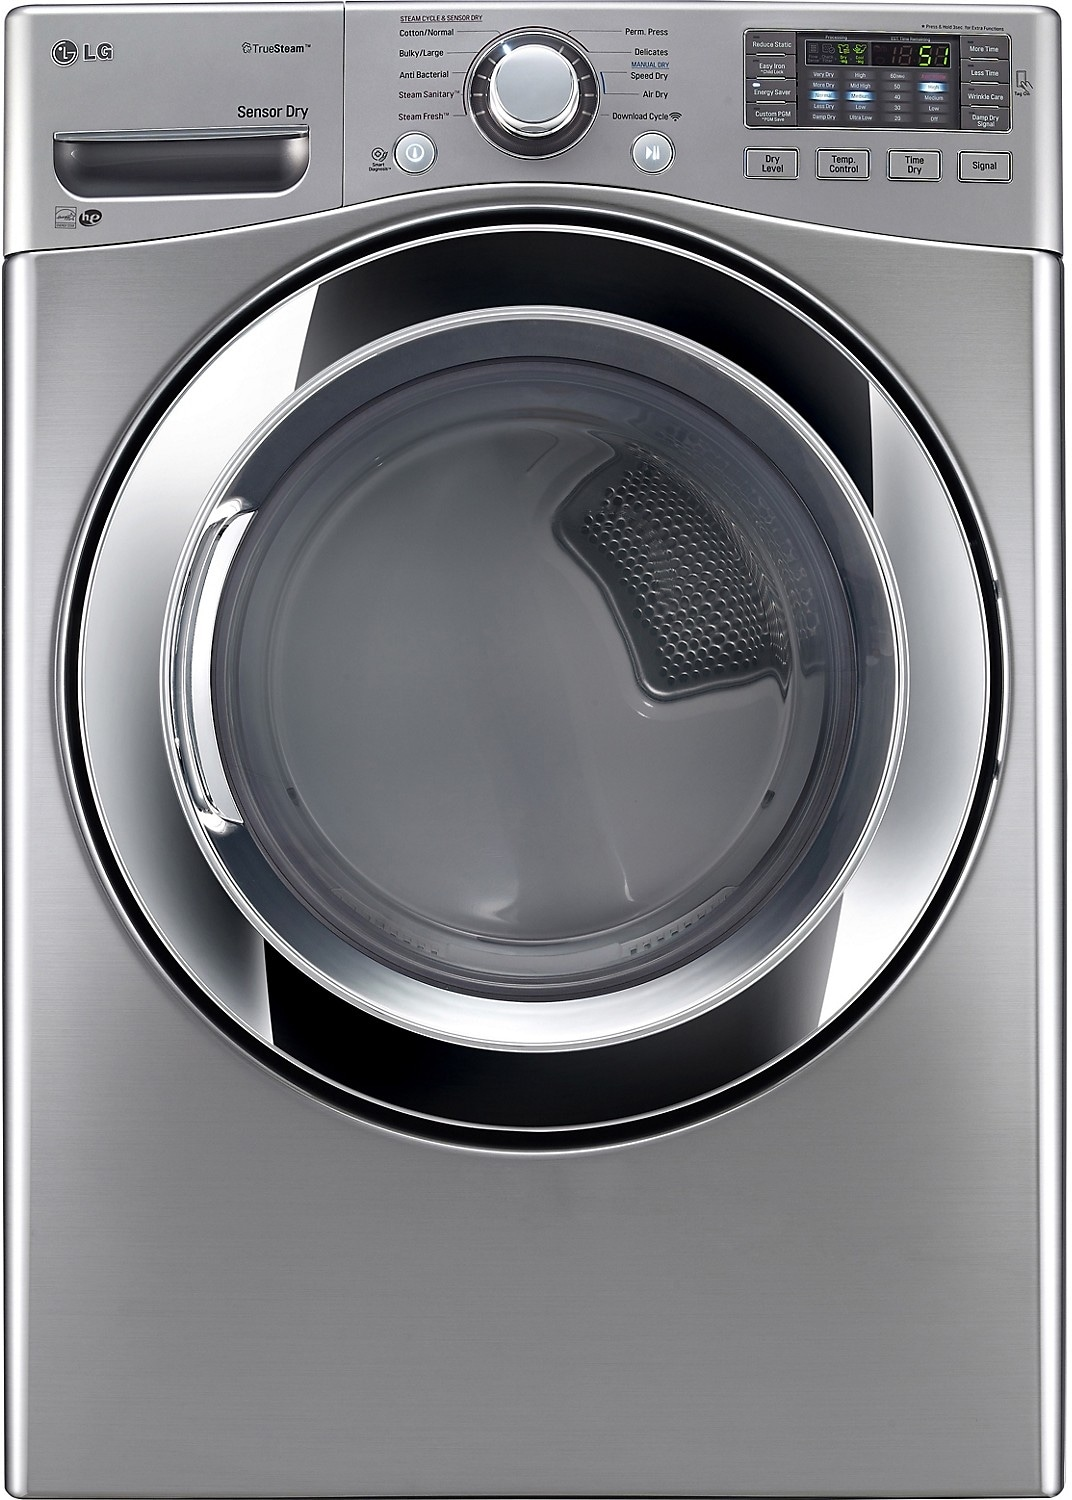 Washers and Dryers - LG 7.4 Cu. Ft. Ultra-Large Capacity Electric SteamDryer™ – Graphite Steel